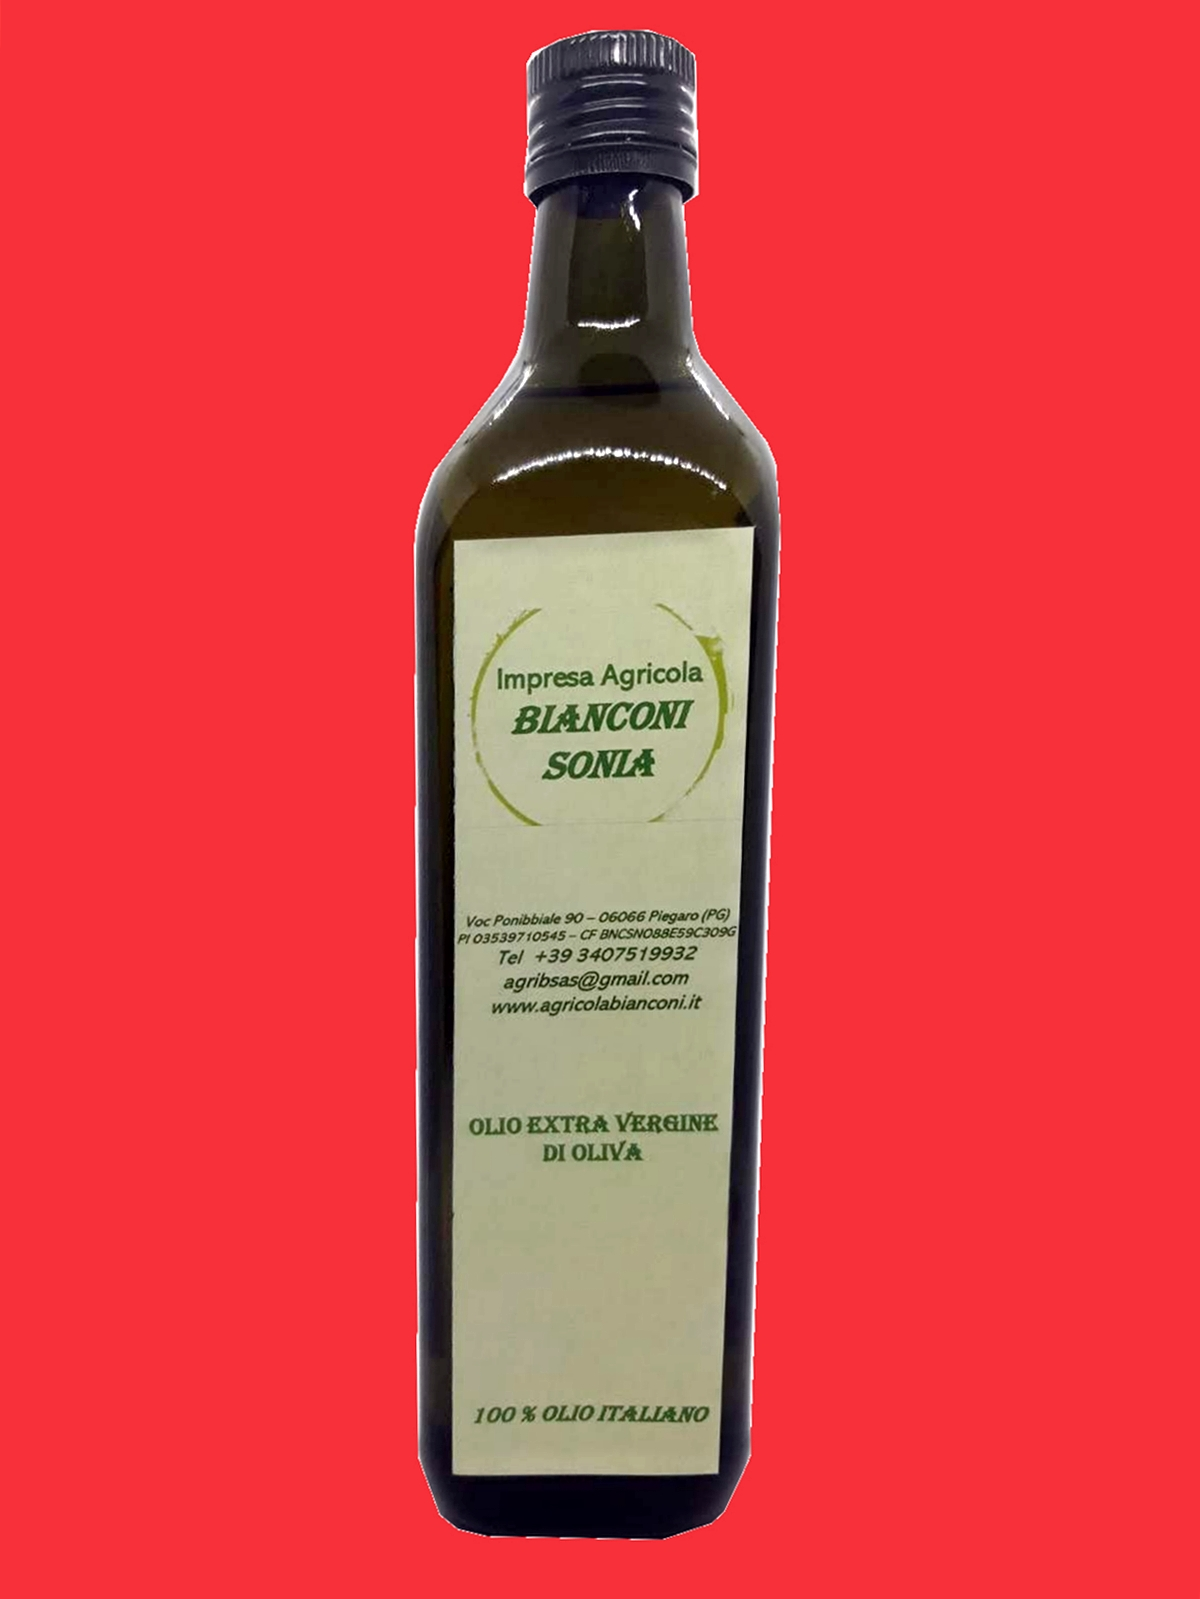 OLIO EXTRA VERGINE DI OLIVA BOTTIGLIA 750 ML – EXTRA VIRGIN OLIVE OIL BOTTLE 750 ML